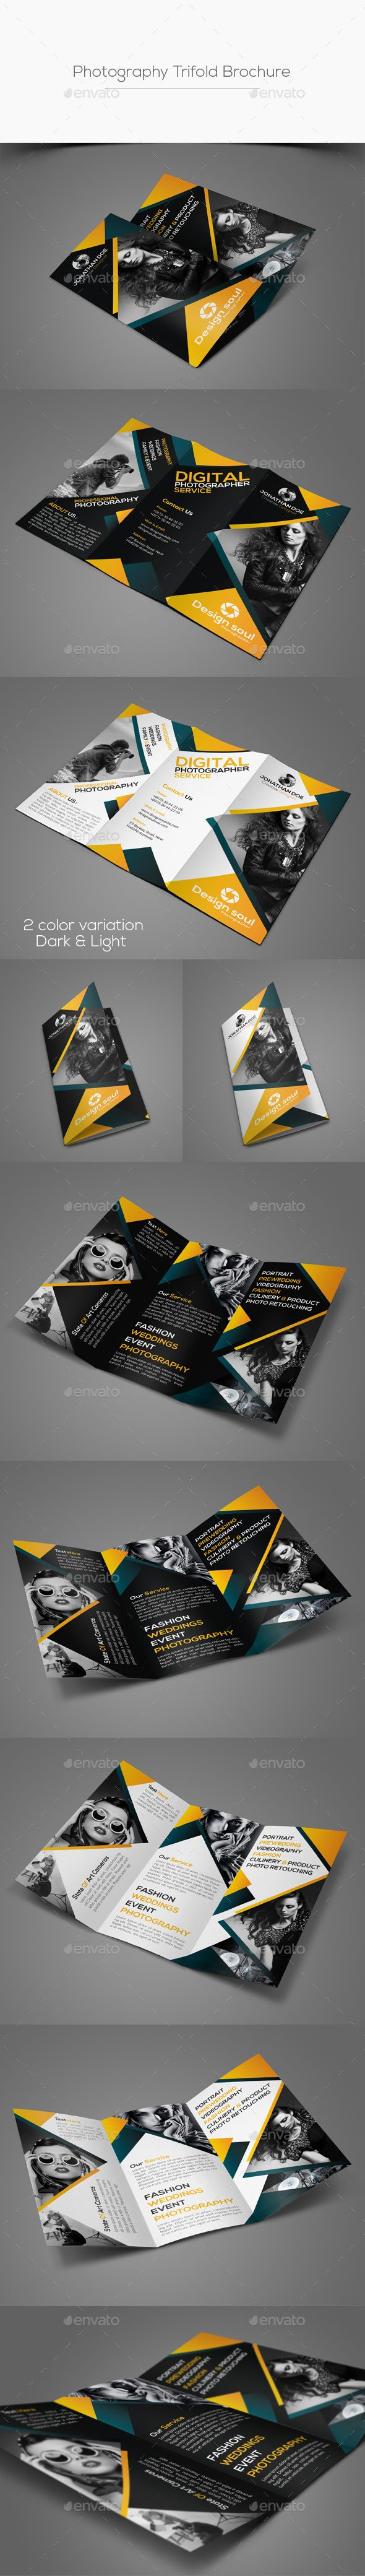 Photography Trifold Brochure Template PSD #design Download: http://graphicriver.net/item/photography-trifold-brochure/14328217?ref=ksioks